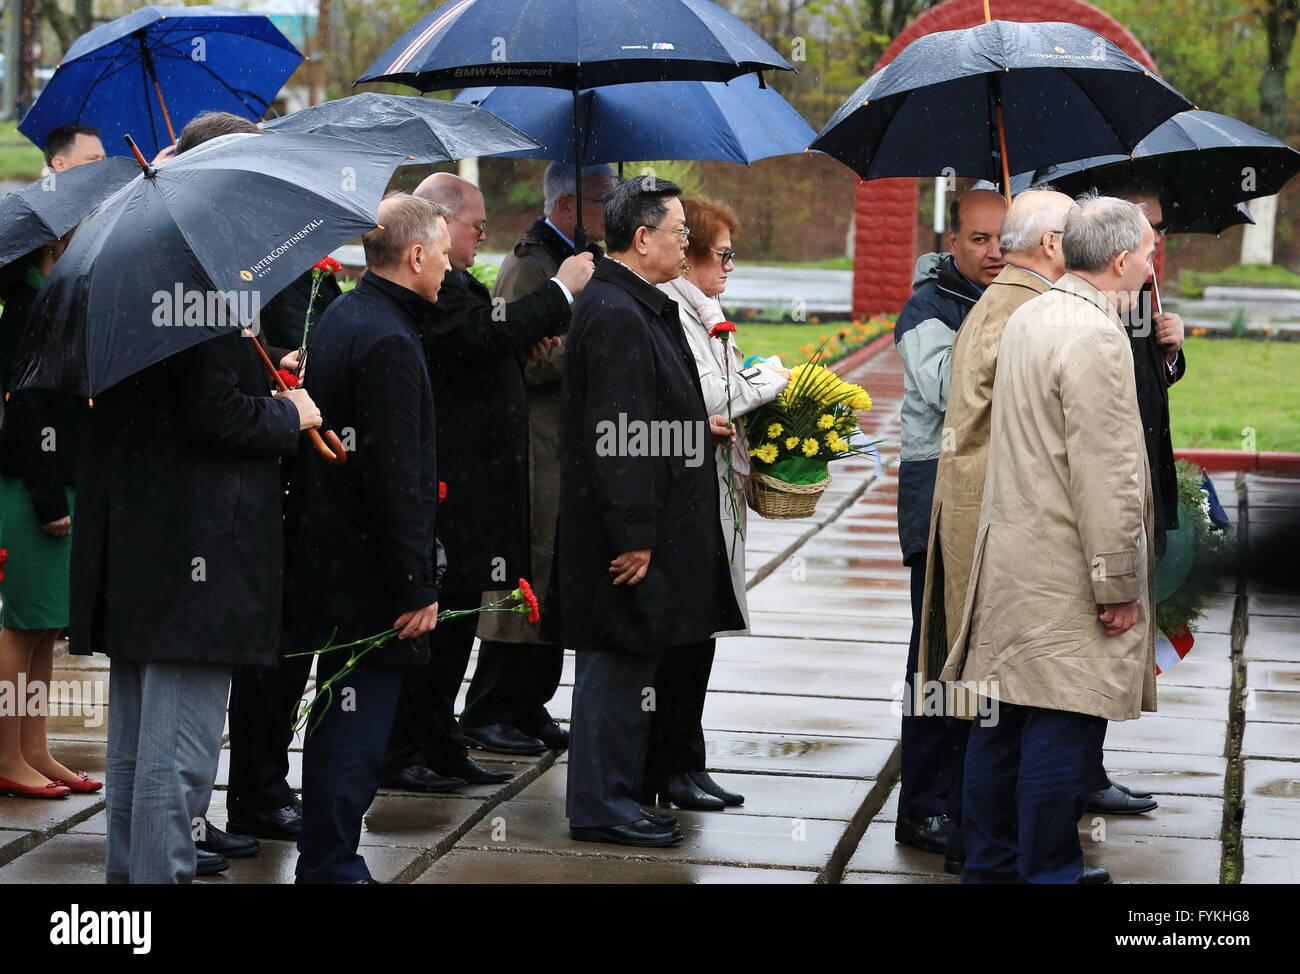 Chernobyl, Ukraine. 26th Apr, 2016. Delegates attend a commemorative event marking the 30th anniversary of the Chernobyl - Stock Image